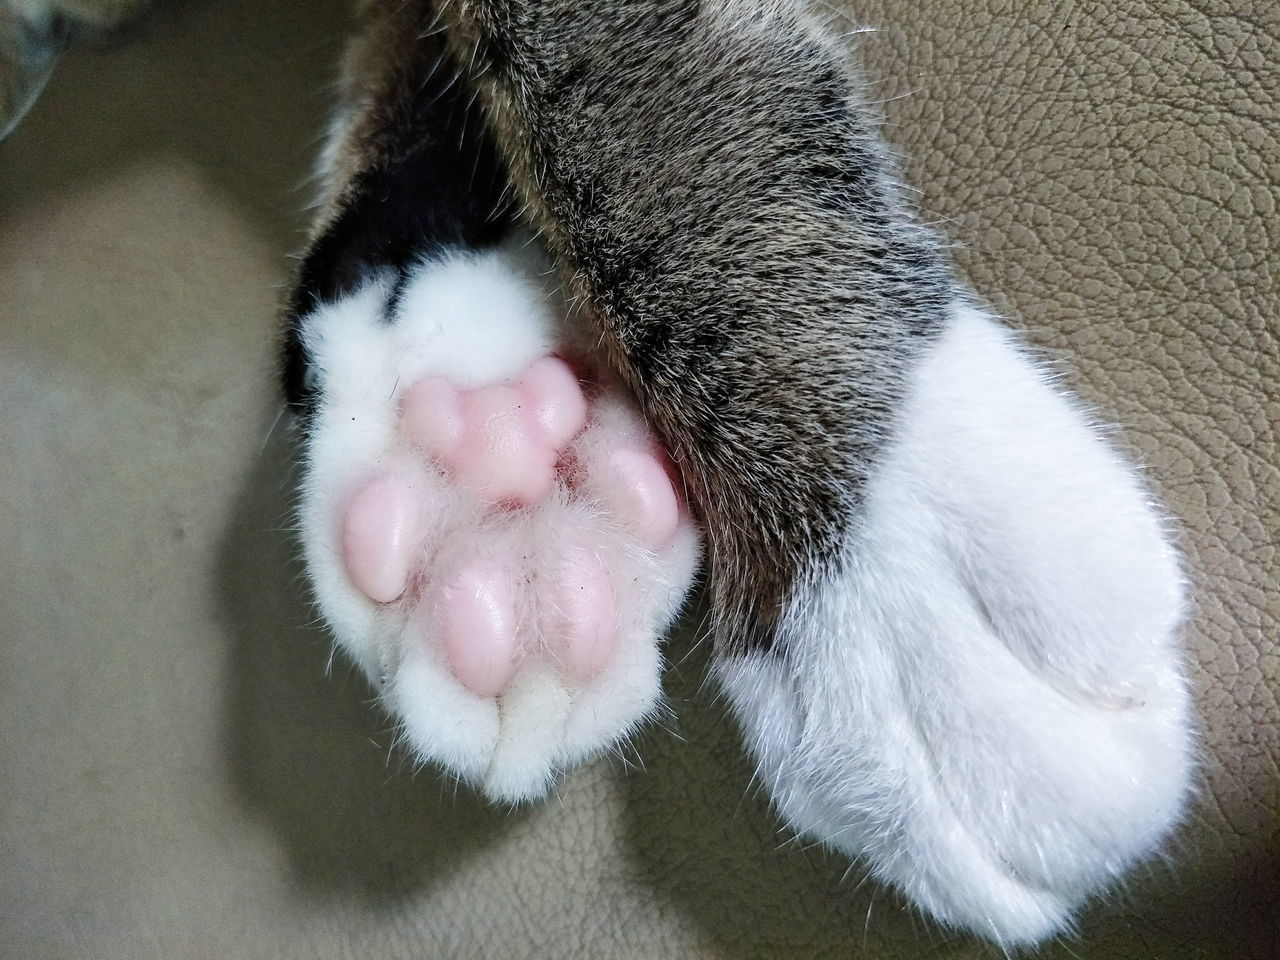 domestic, mammal, animal, pets, animal themes, domestic animals, one animal, cat, vertebrate, feline, domestic cat, relaxation, sleeping, close-up, animal body part, indoors, no people, paw, high angle view, resting, animal leg, animal head, whisker, animal mouth